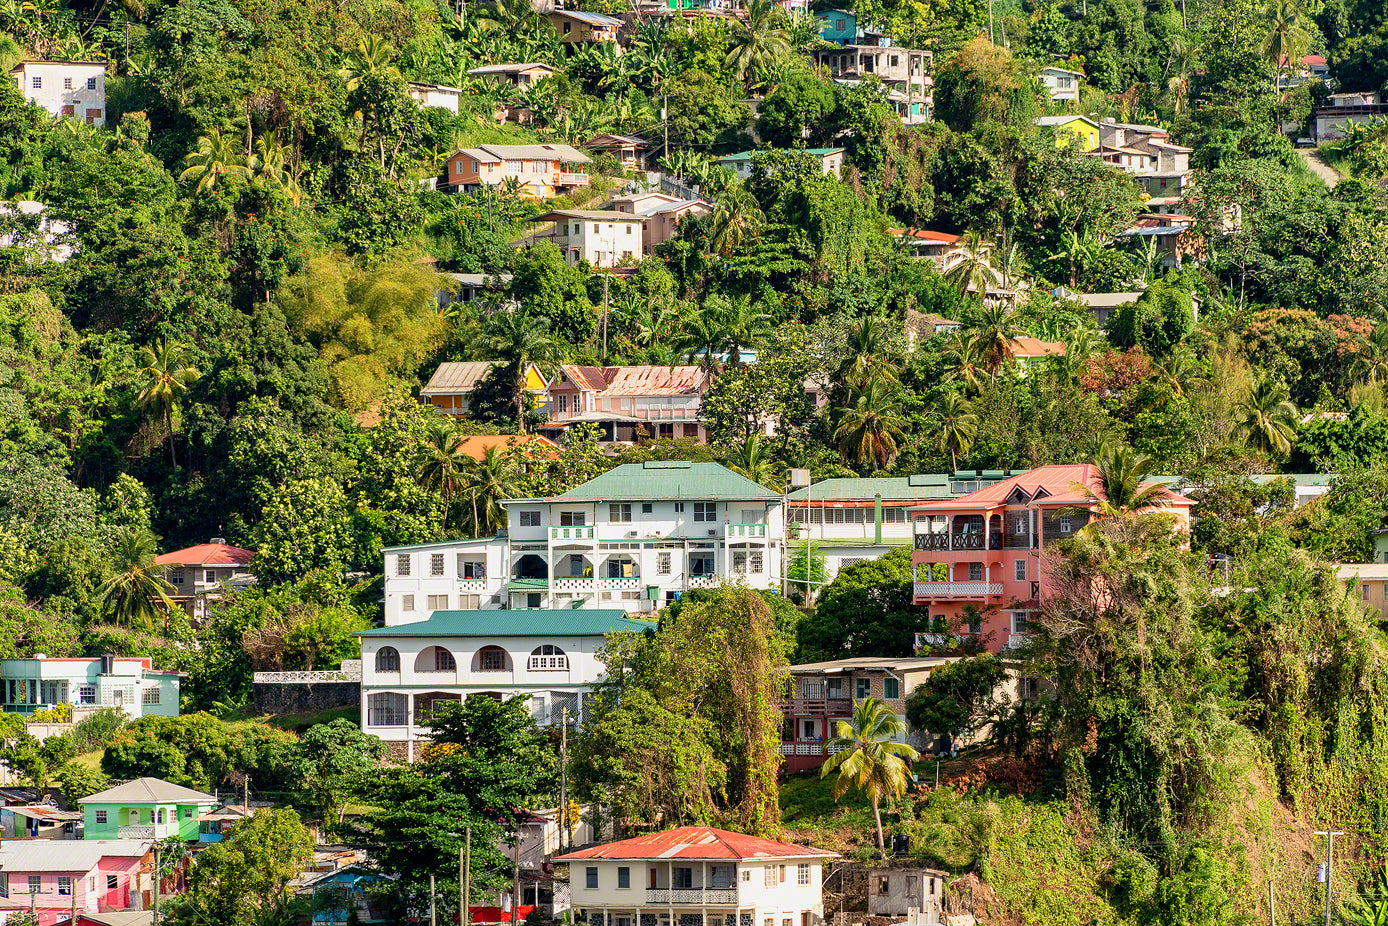 A photo of colorful houses in tropical St. Lucia